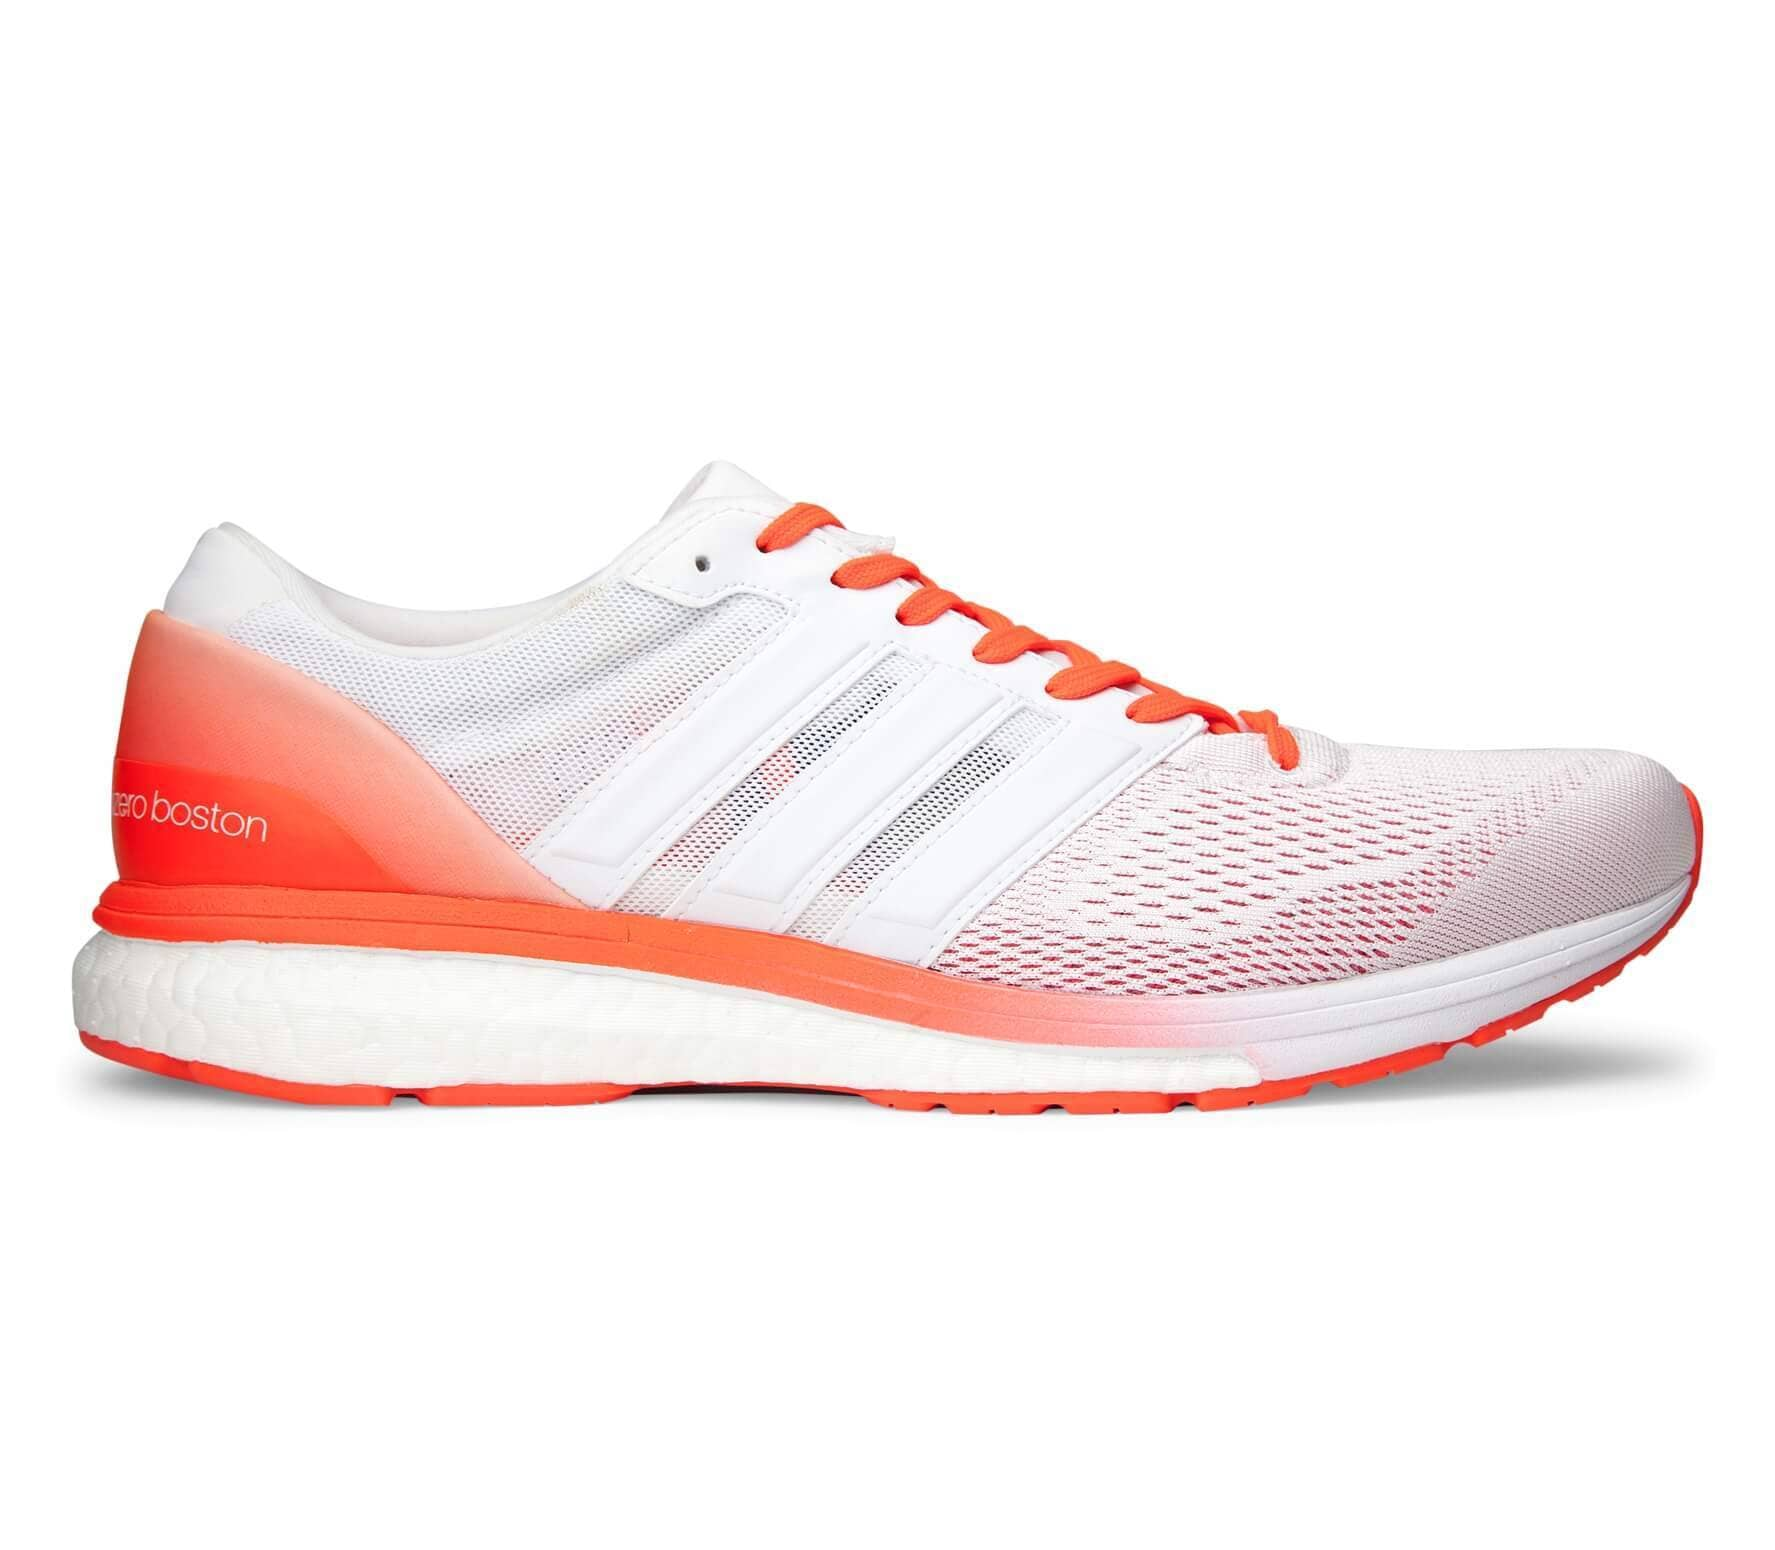 finest selection 5a807 1fa35 Adidas - adizero Boston 6 Hommes chaussure de course (blanc Orange)